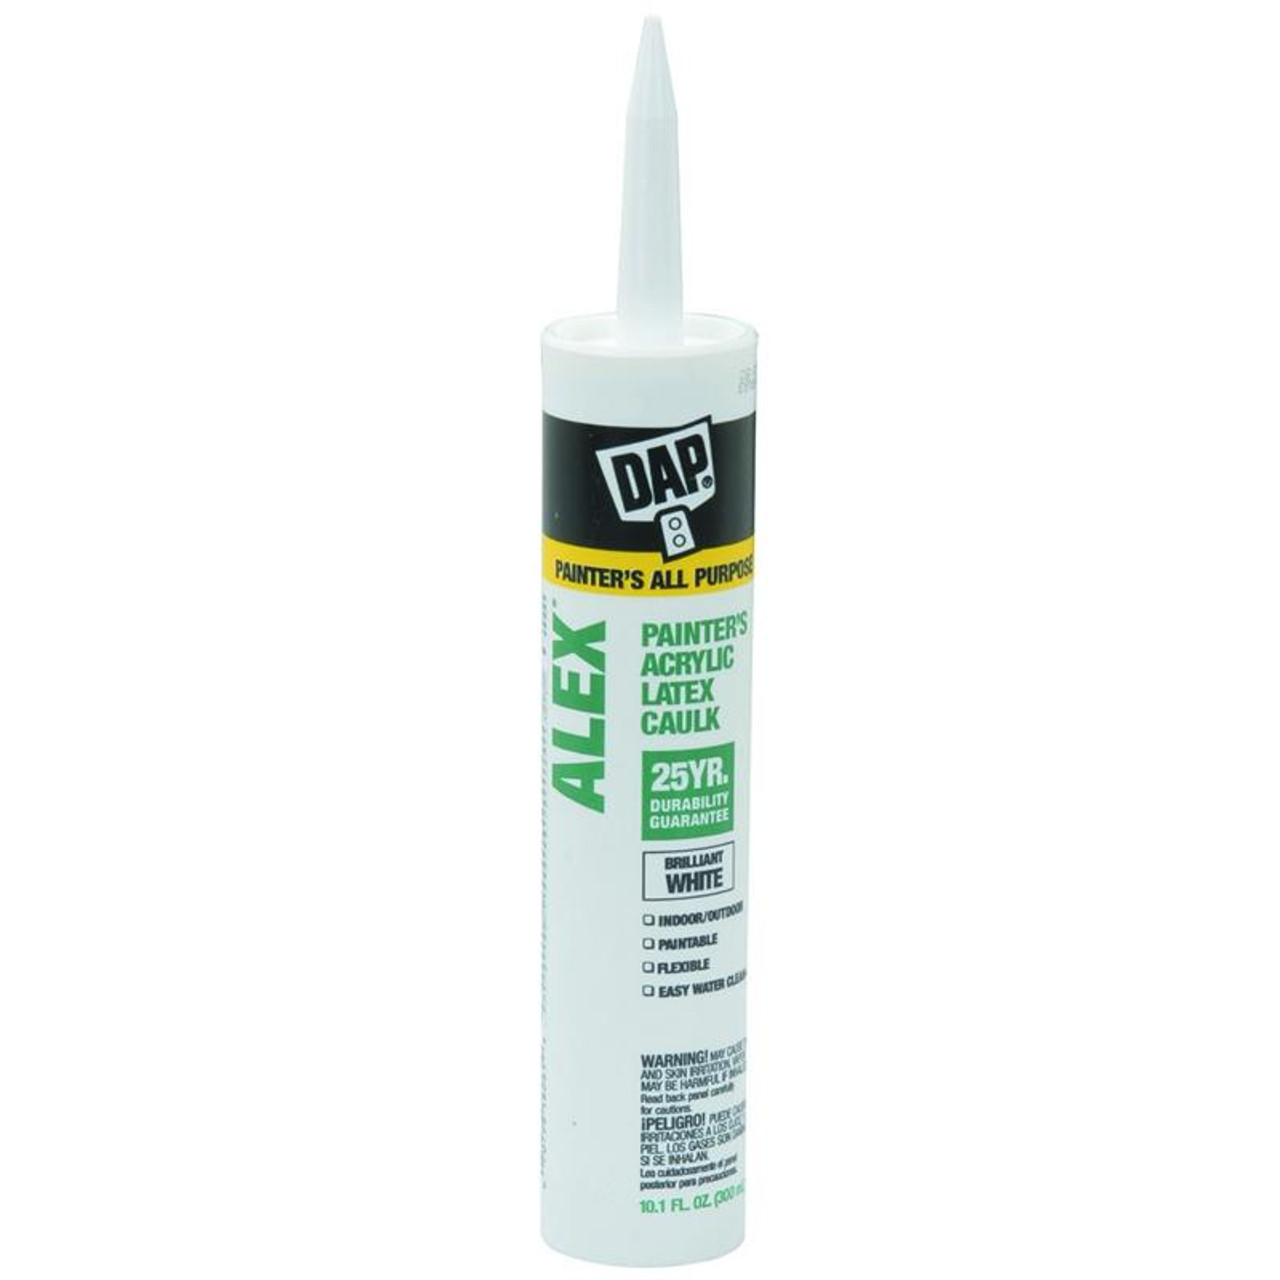 DAP 10.1 oz White Alex Painters Acrylic Latex Caulk 25 Year